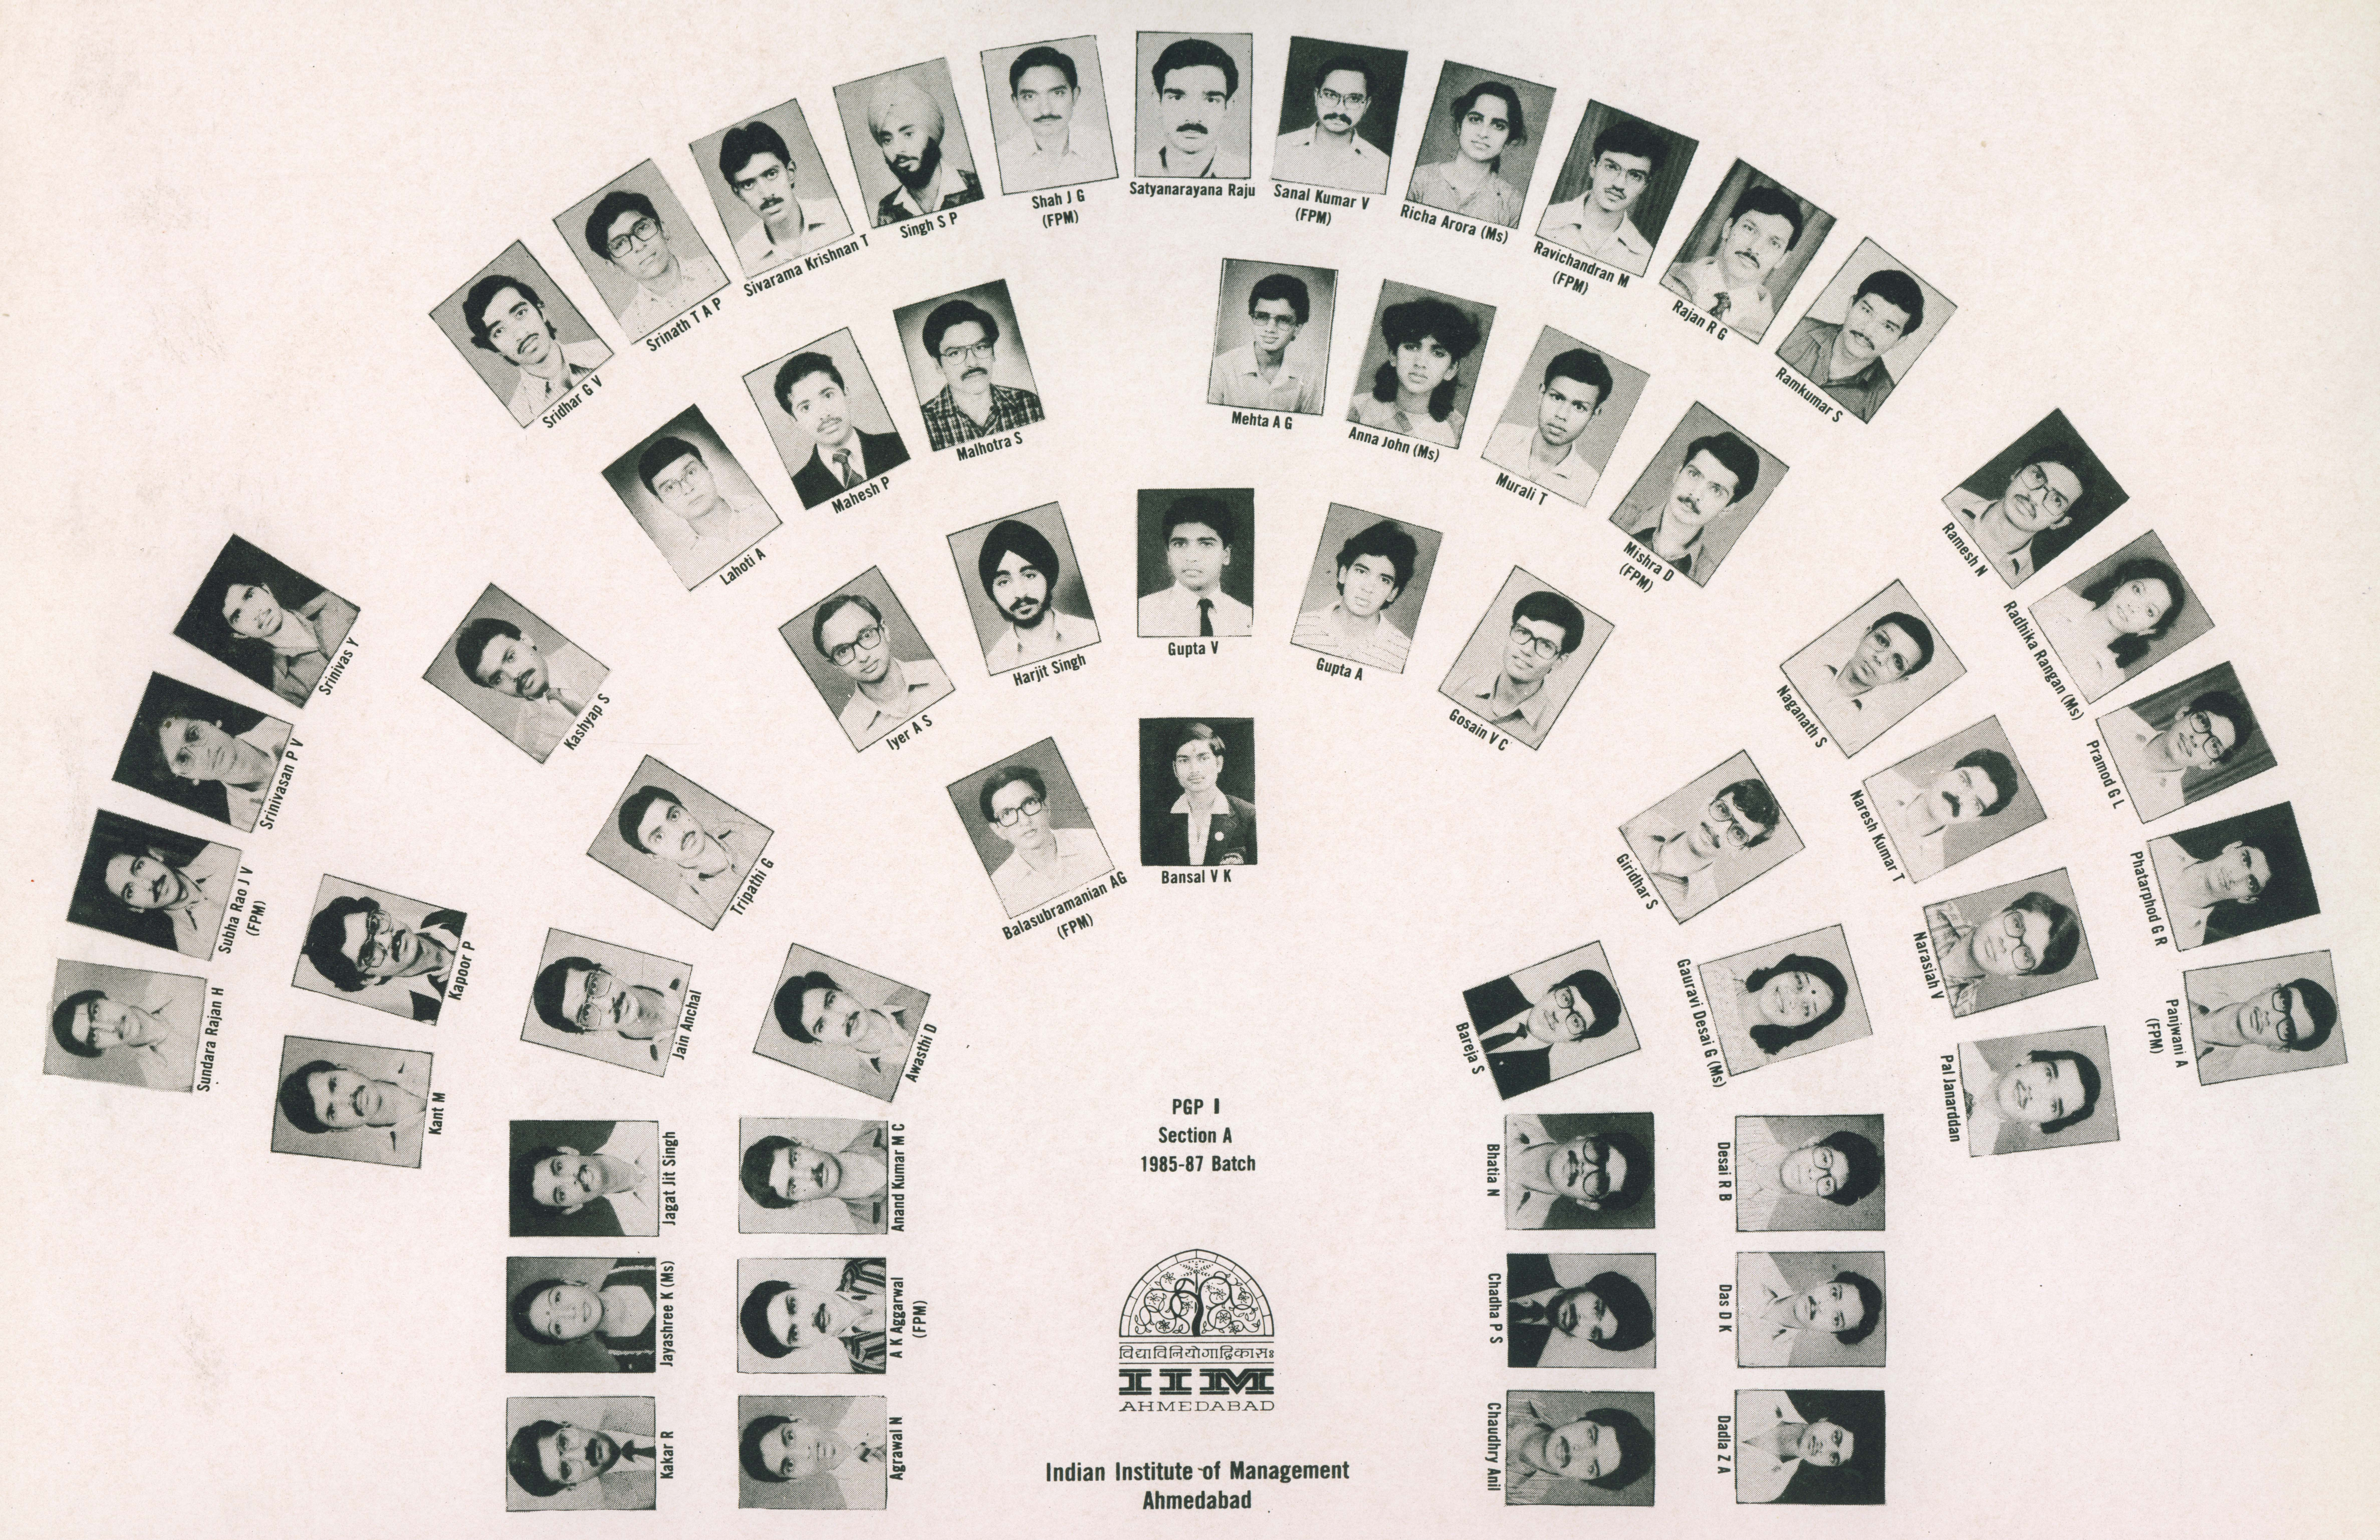 The face chart of Section A of the students of the PGP 1985-87 batch which shows Raghuram Rajan (as Rajan R G)